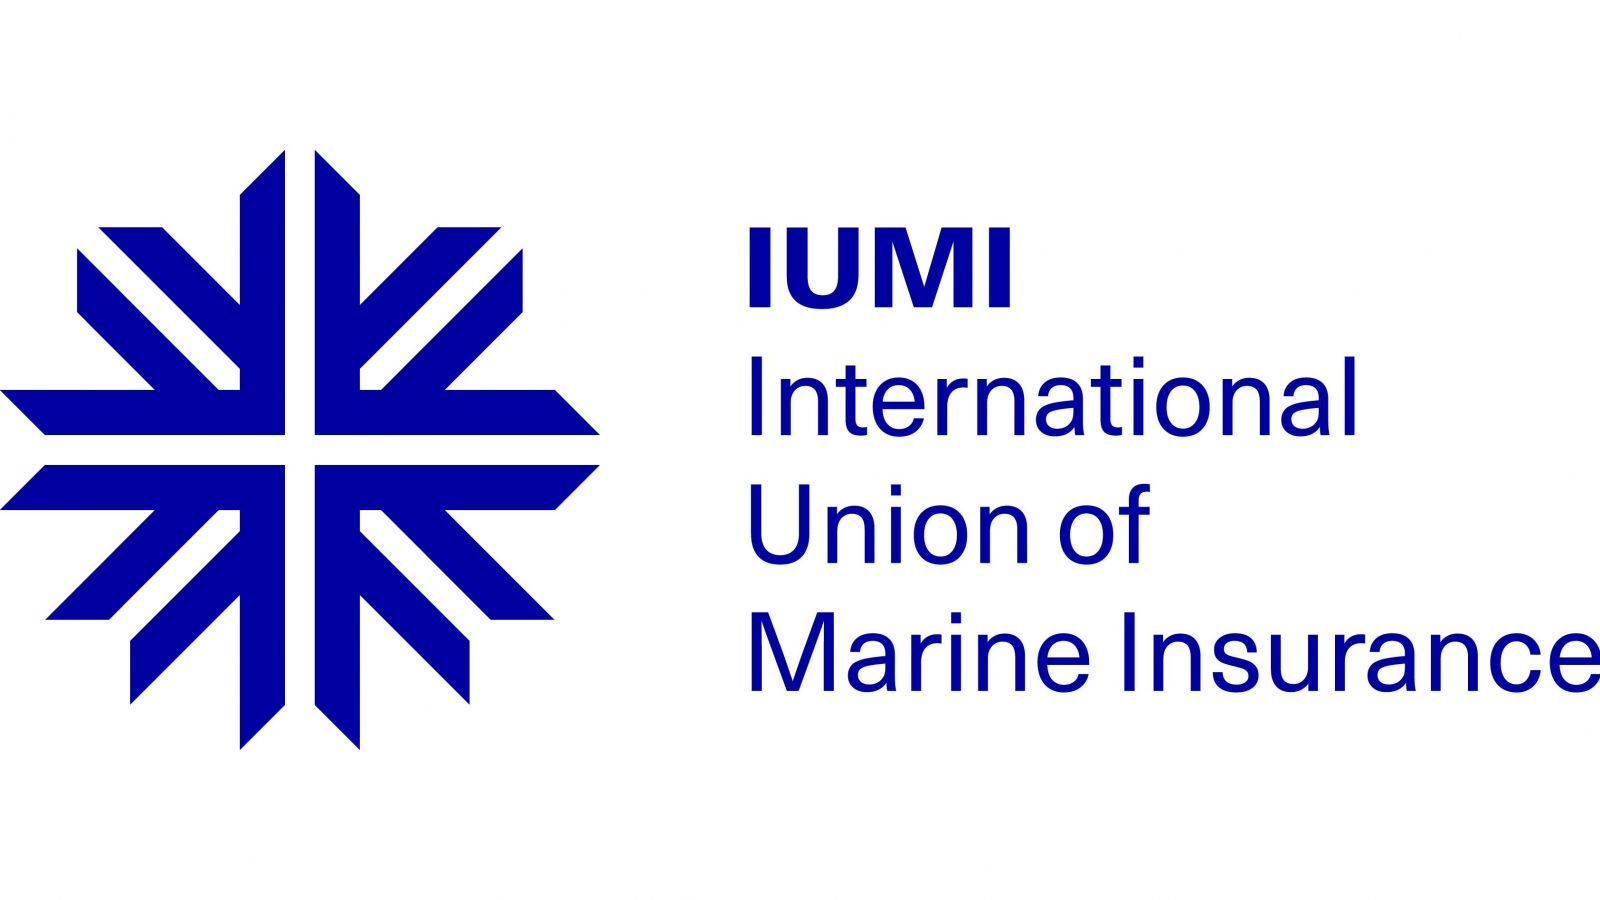 Global Ocean Hull Premiums Down 2.3% But General Risk Profile And Trading Conditions Showing Some Improvement, Reports IUMI